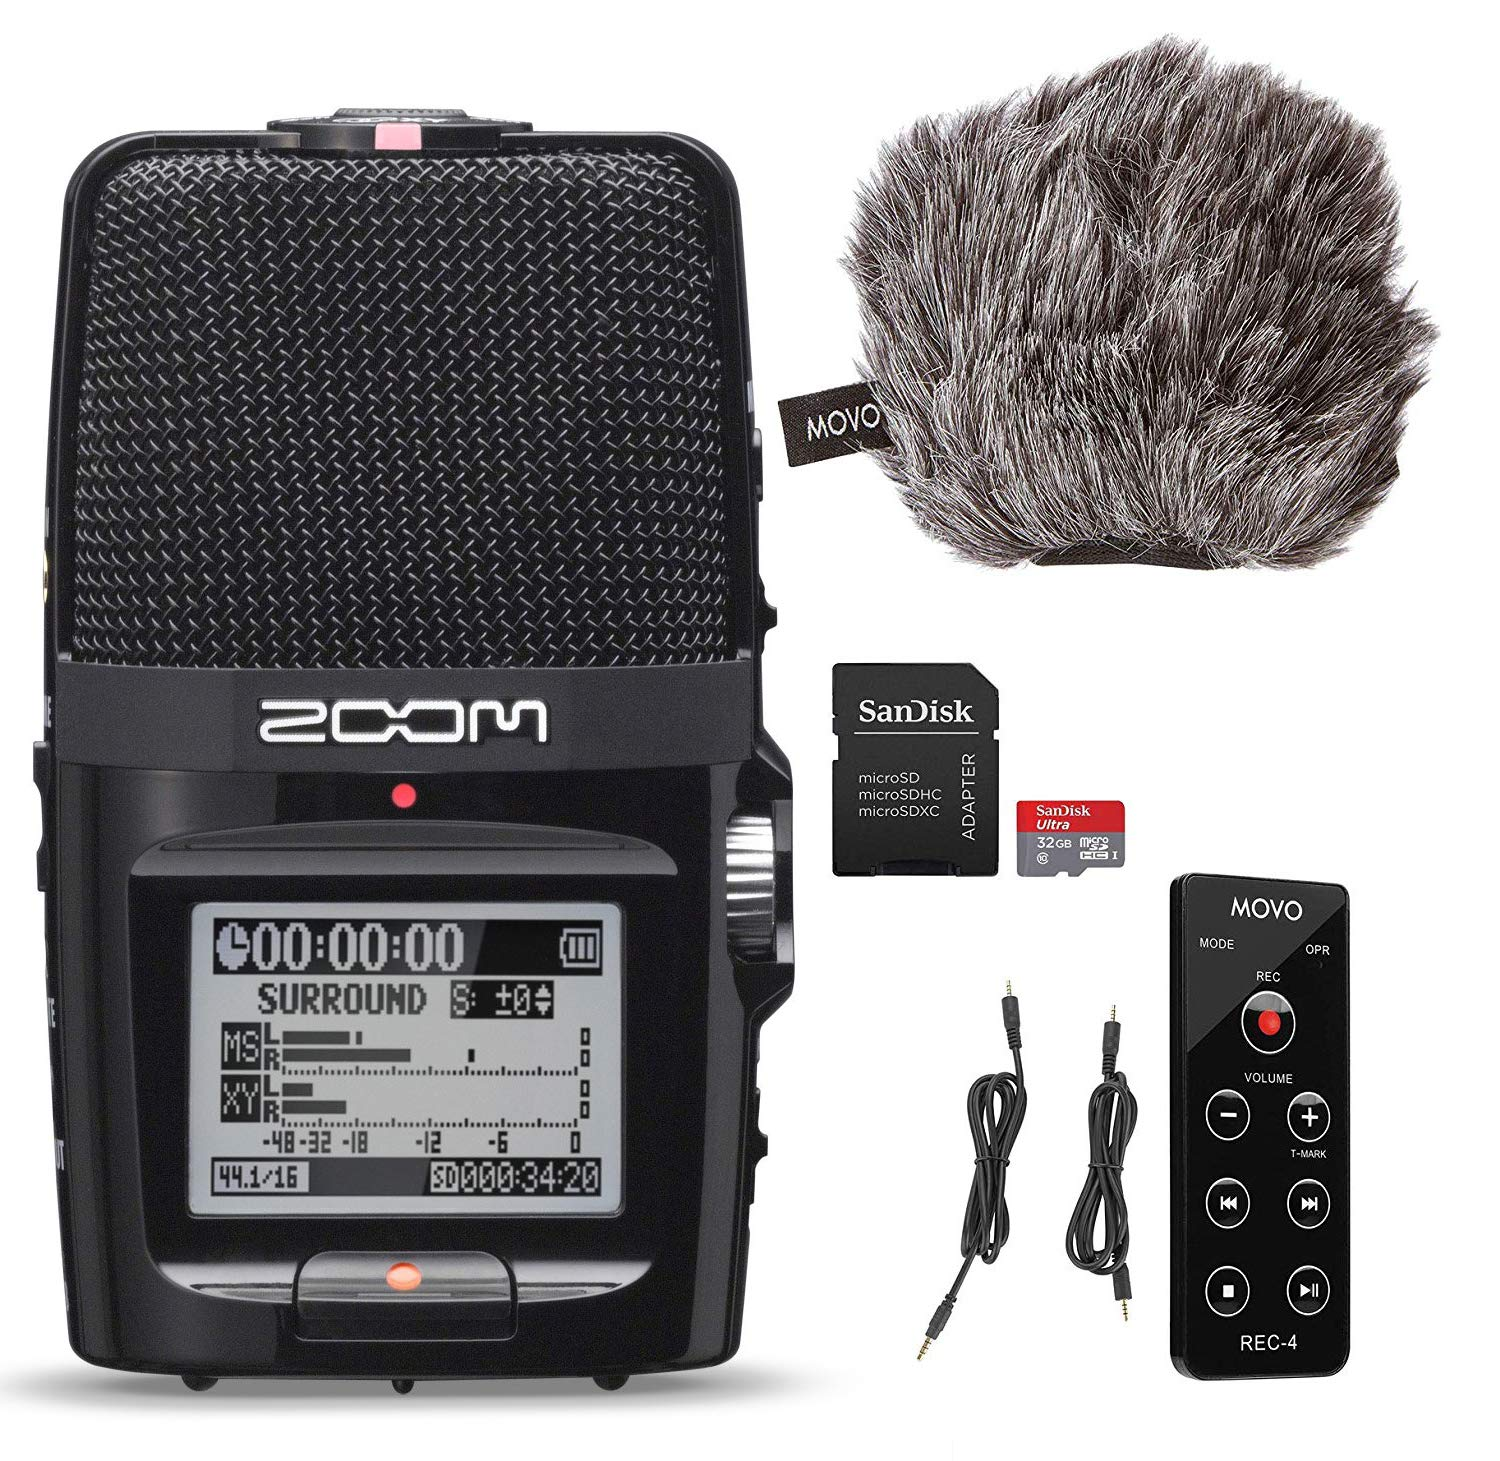 Zoom H2n Handy Audio Recorder with Movo ESSENTIALS Bundle - Includes''Deadcat'' Windscreen, Remote Commander, and 32GB SDHC Memory Card